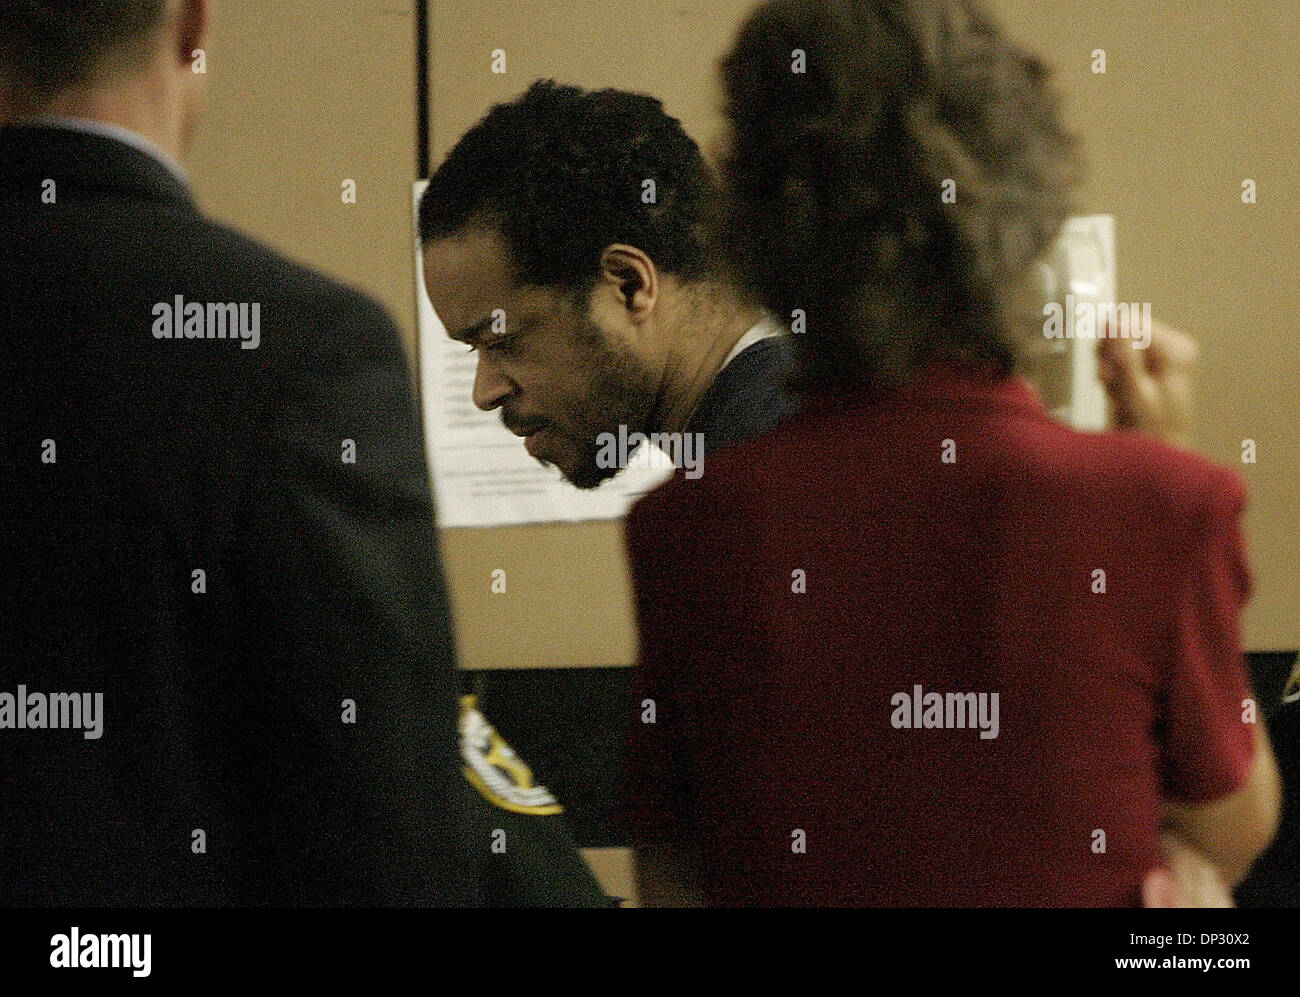 Jun 14, 2006; West Palm Beach, FL, USA; Jamie Lee Daniel, center, pled guilty to killing his former wife Renay and their son Sabree and was sentenced to 50 years in prison with no chance of early release today at the Palm Beach County Courthouse in West Palm Beach. Family members of murder victims were present in Judge Krista Marx's courtroom. Mandatory Credit: Photo by Thomas Cord - Stock Image